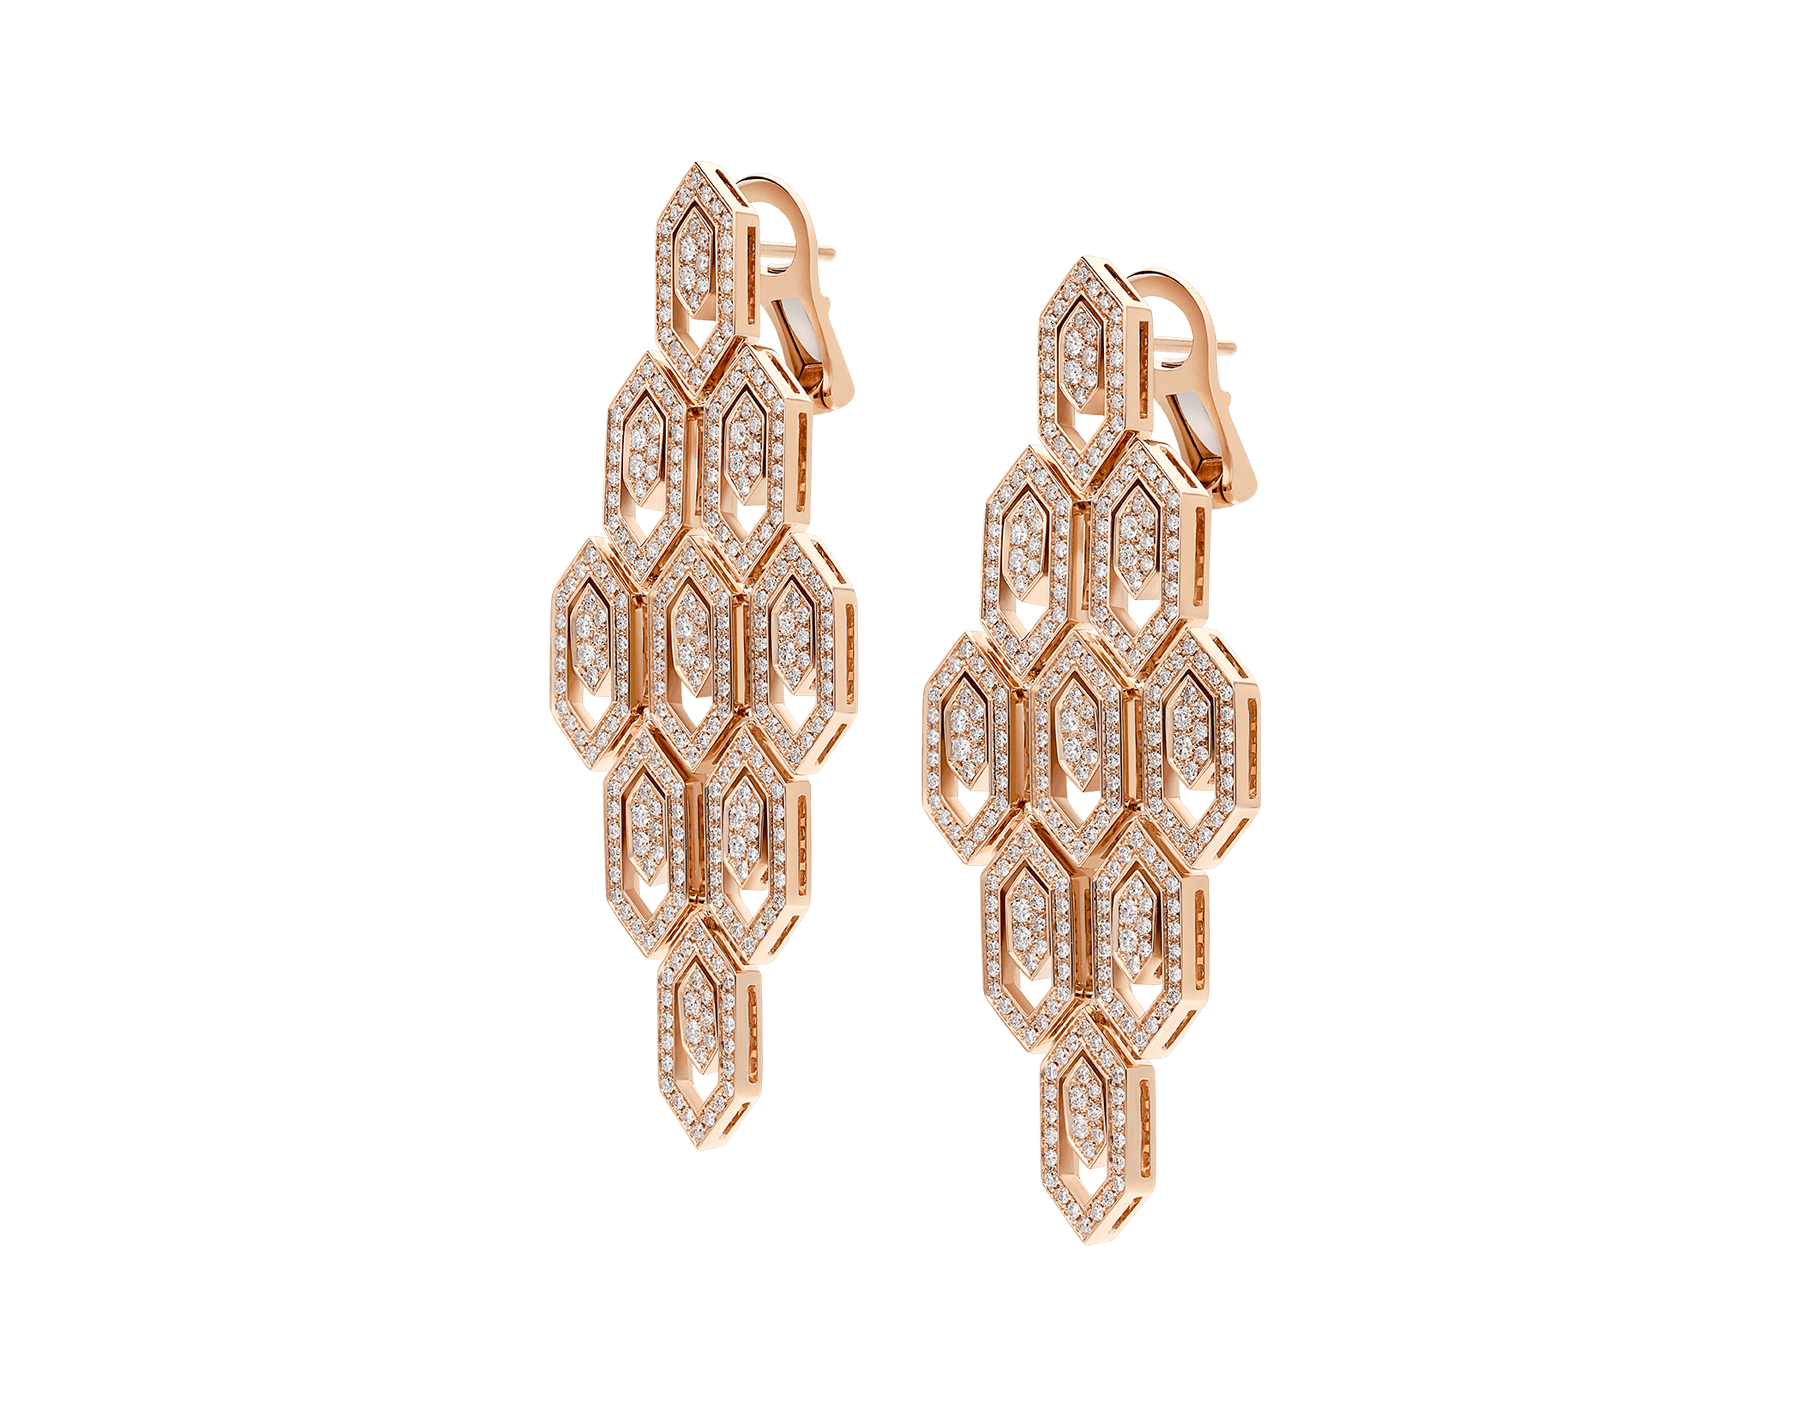 Serpenti 18 kt rose gold earrings set with pavé diamonds. 356507 image 2